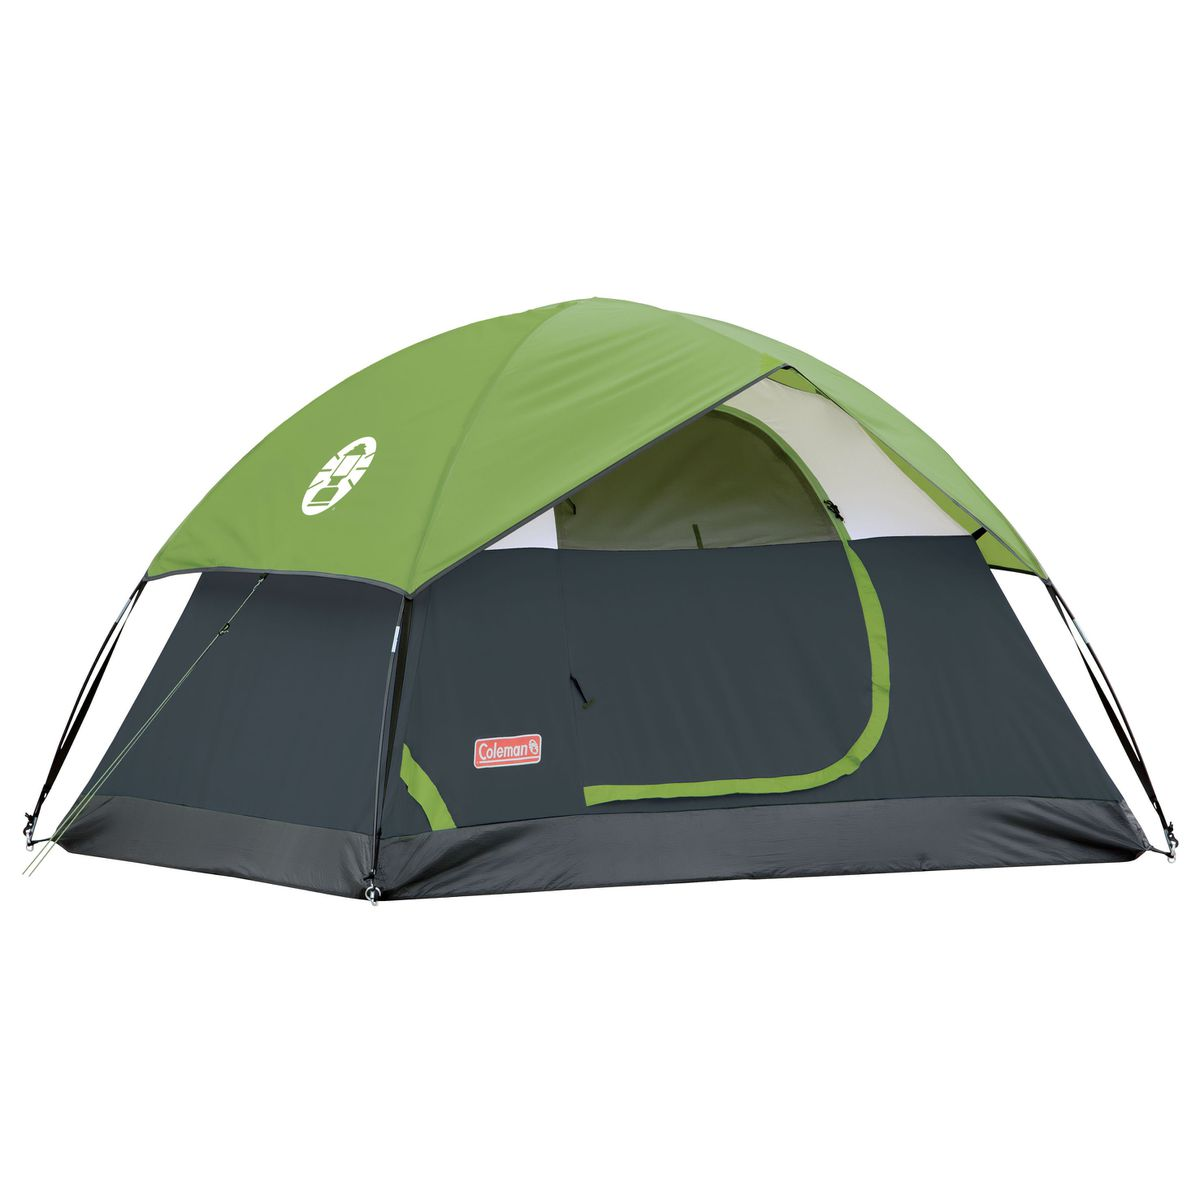 Coleman Sundome 6 Person Tent - Green. Loading zoom  sc 1 st  Takealot.com & Coleman Sundome 6 Person Tent - Green | Buy Online in South Africa ...